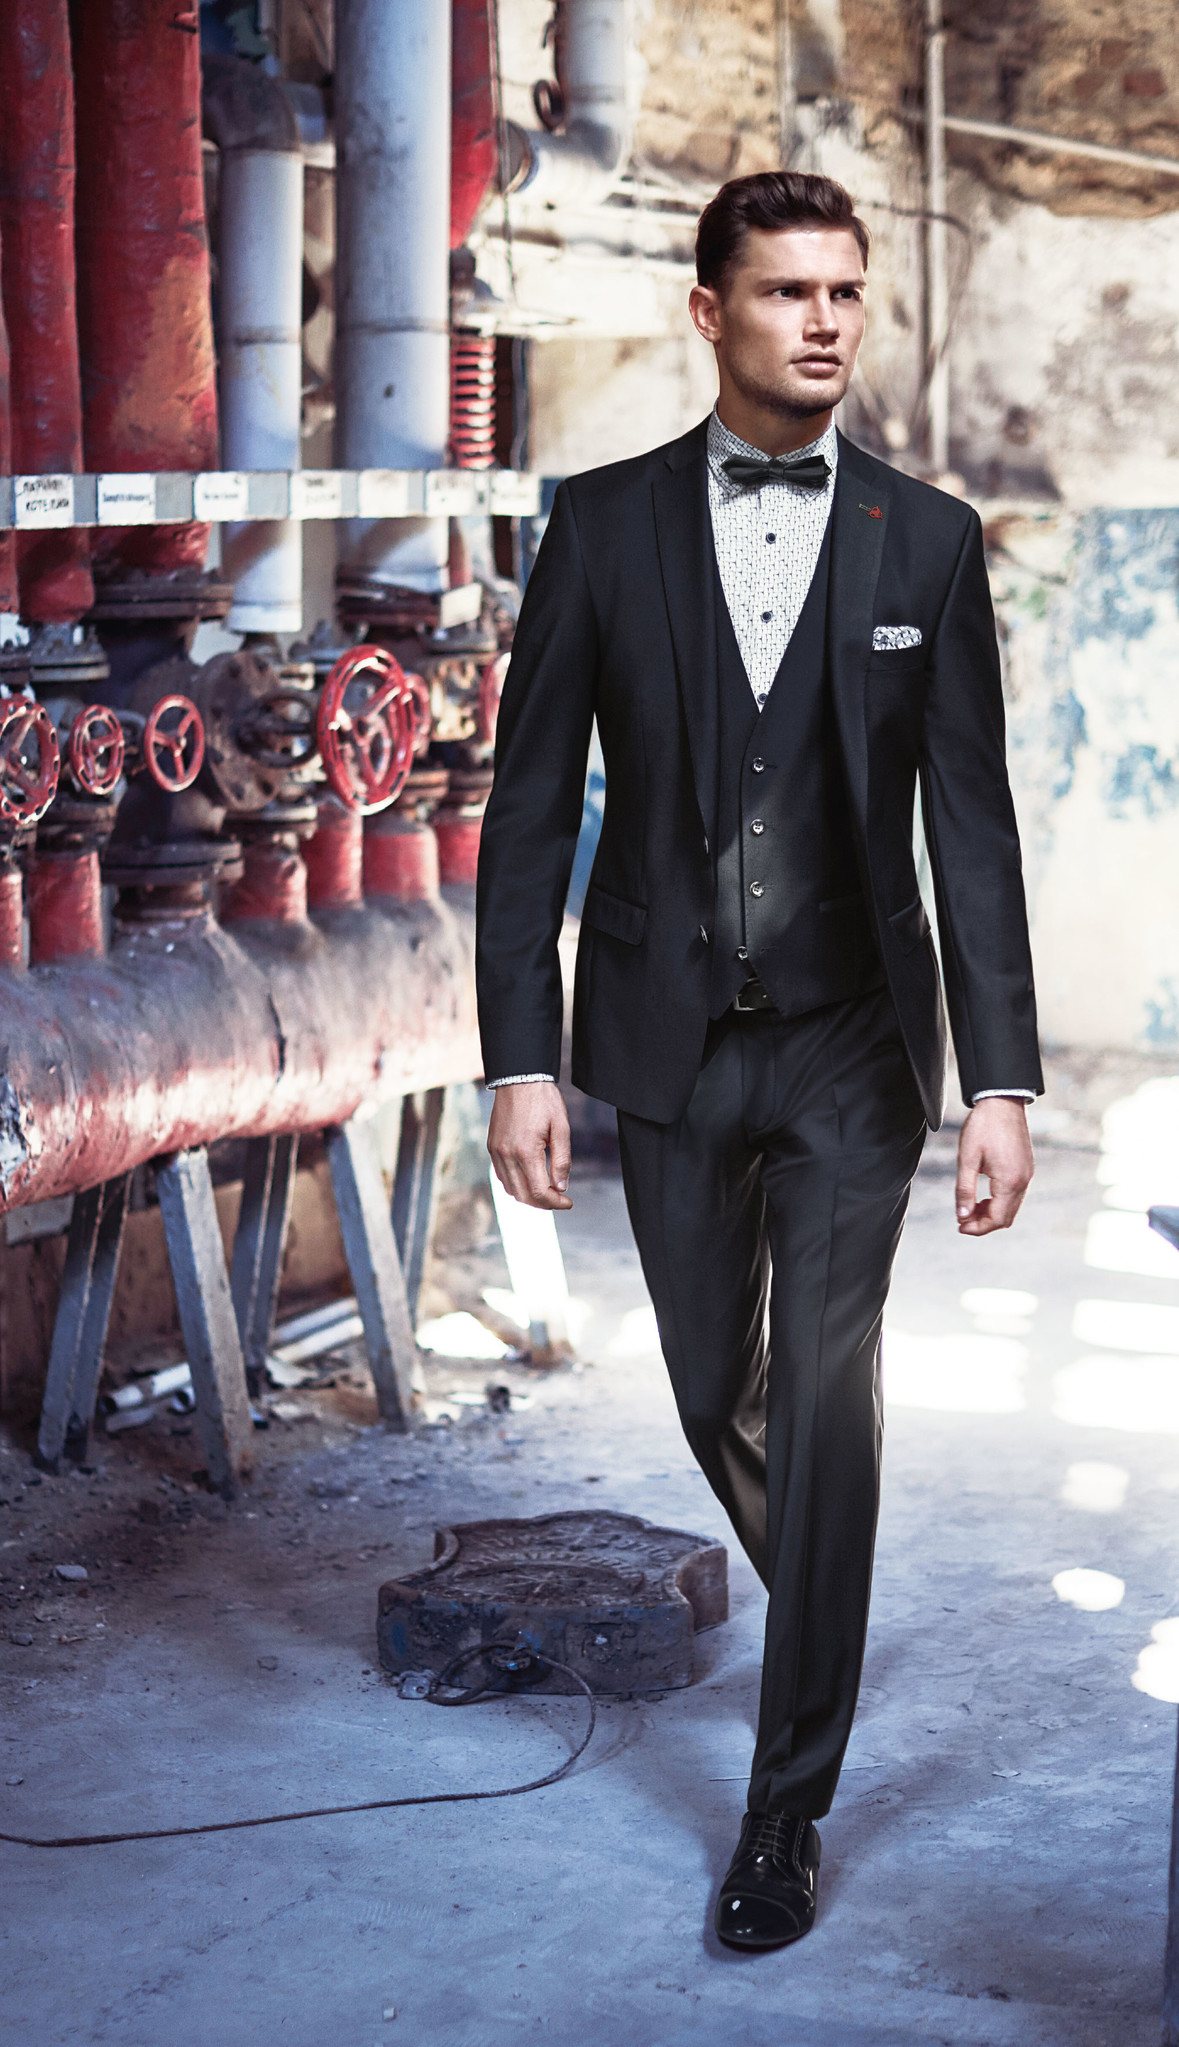 Roy Robson Slim Fit Evening Suit - Peak Lapel